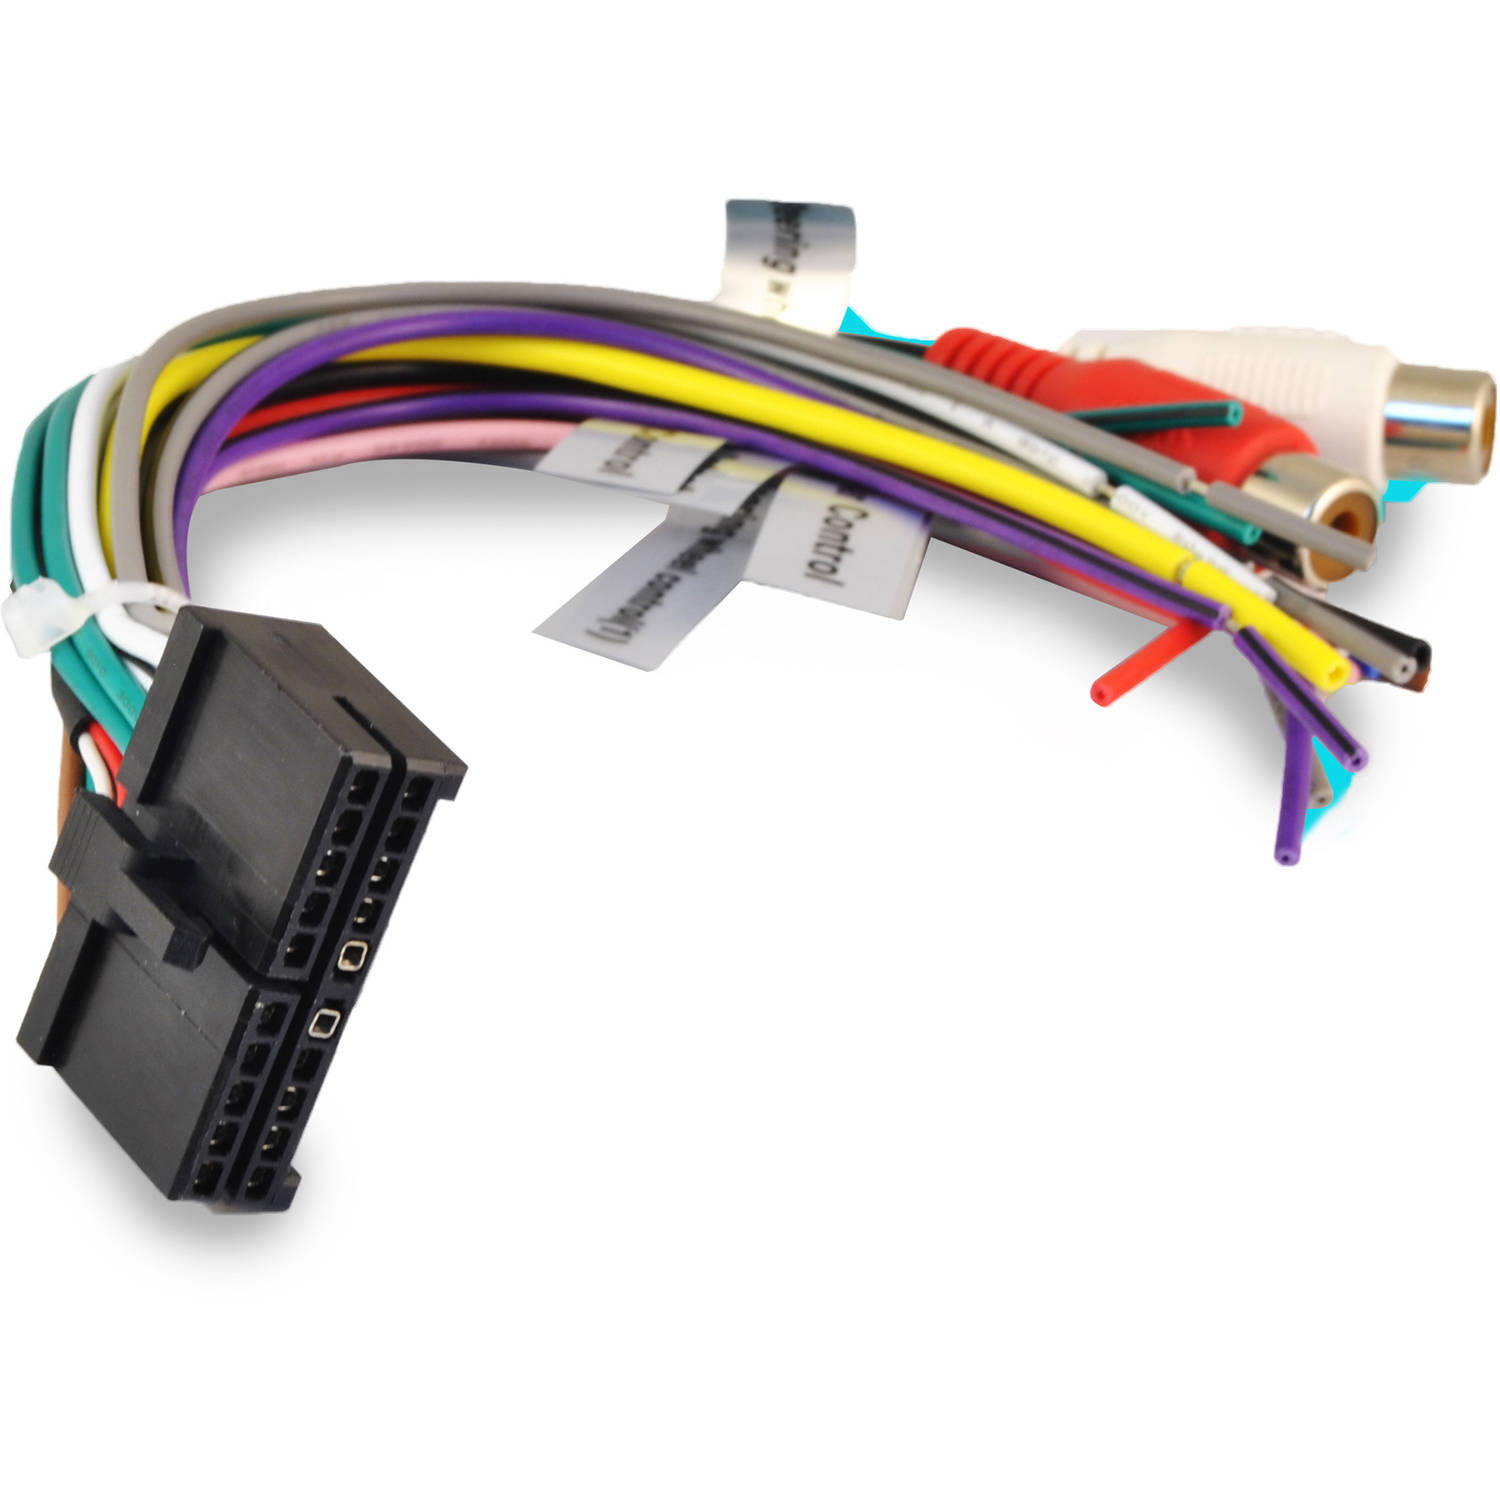 Boss Audio Wiring Harness Diagram Electrical Diagrams Clarion Marine Stereo Radio In Addition Car Schematic